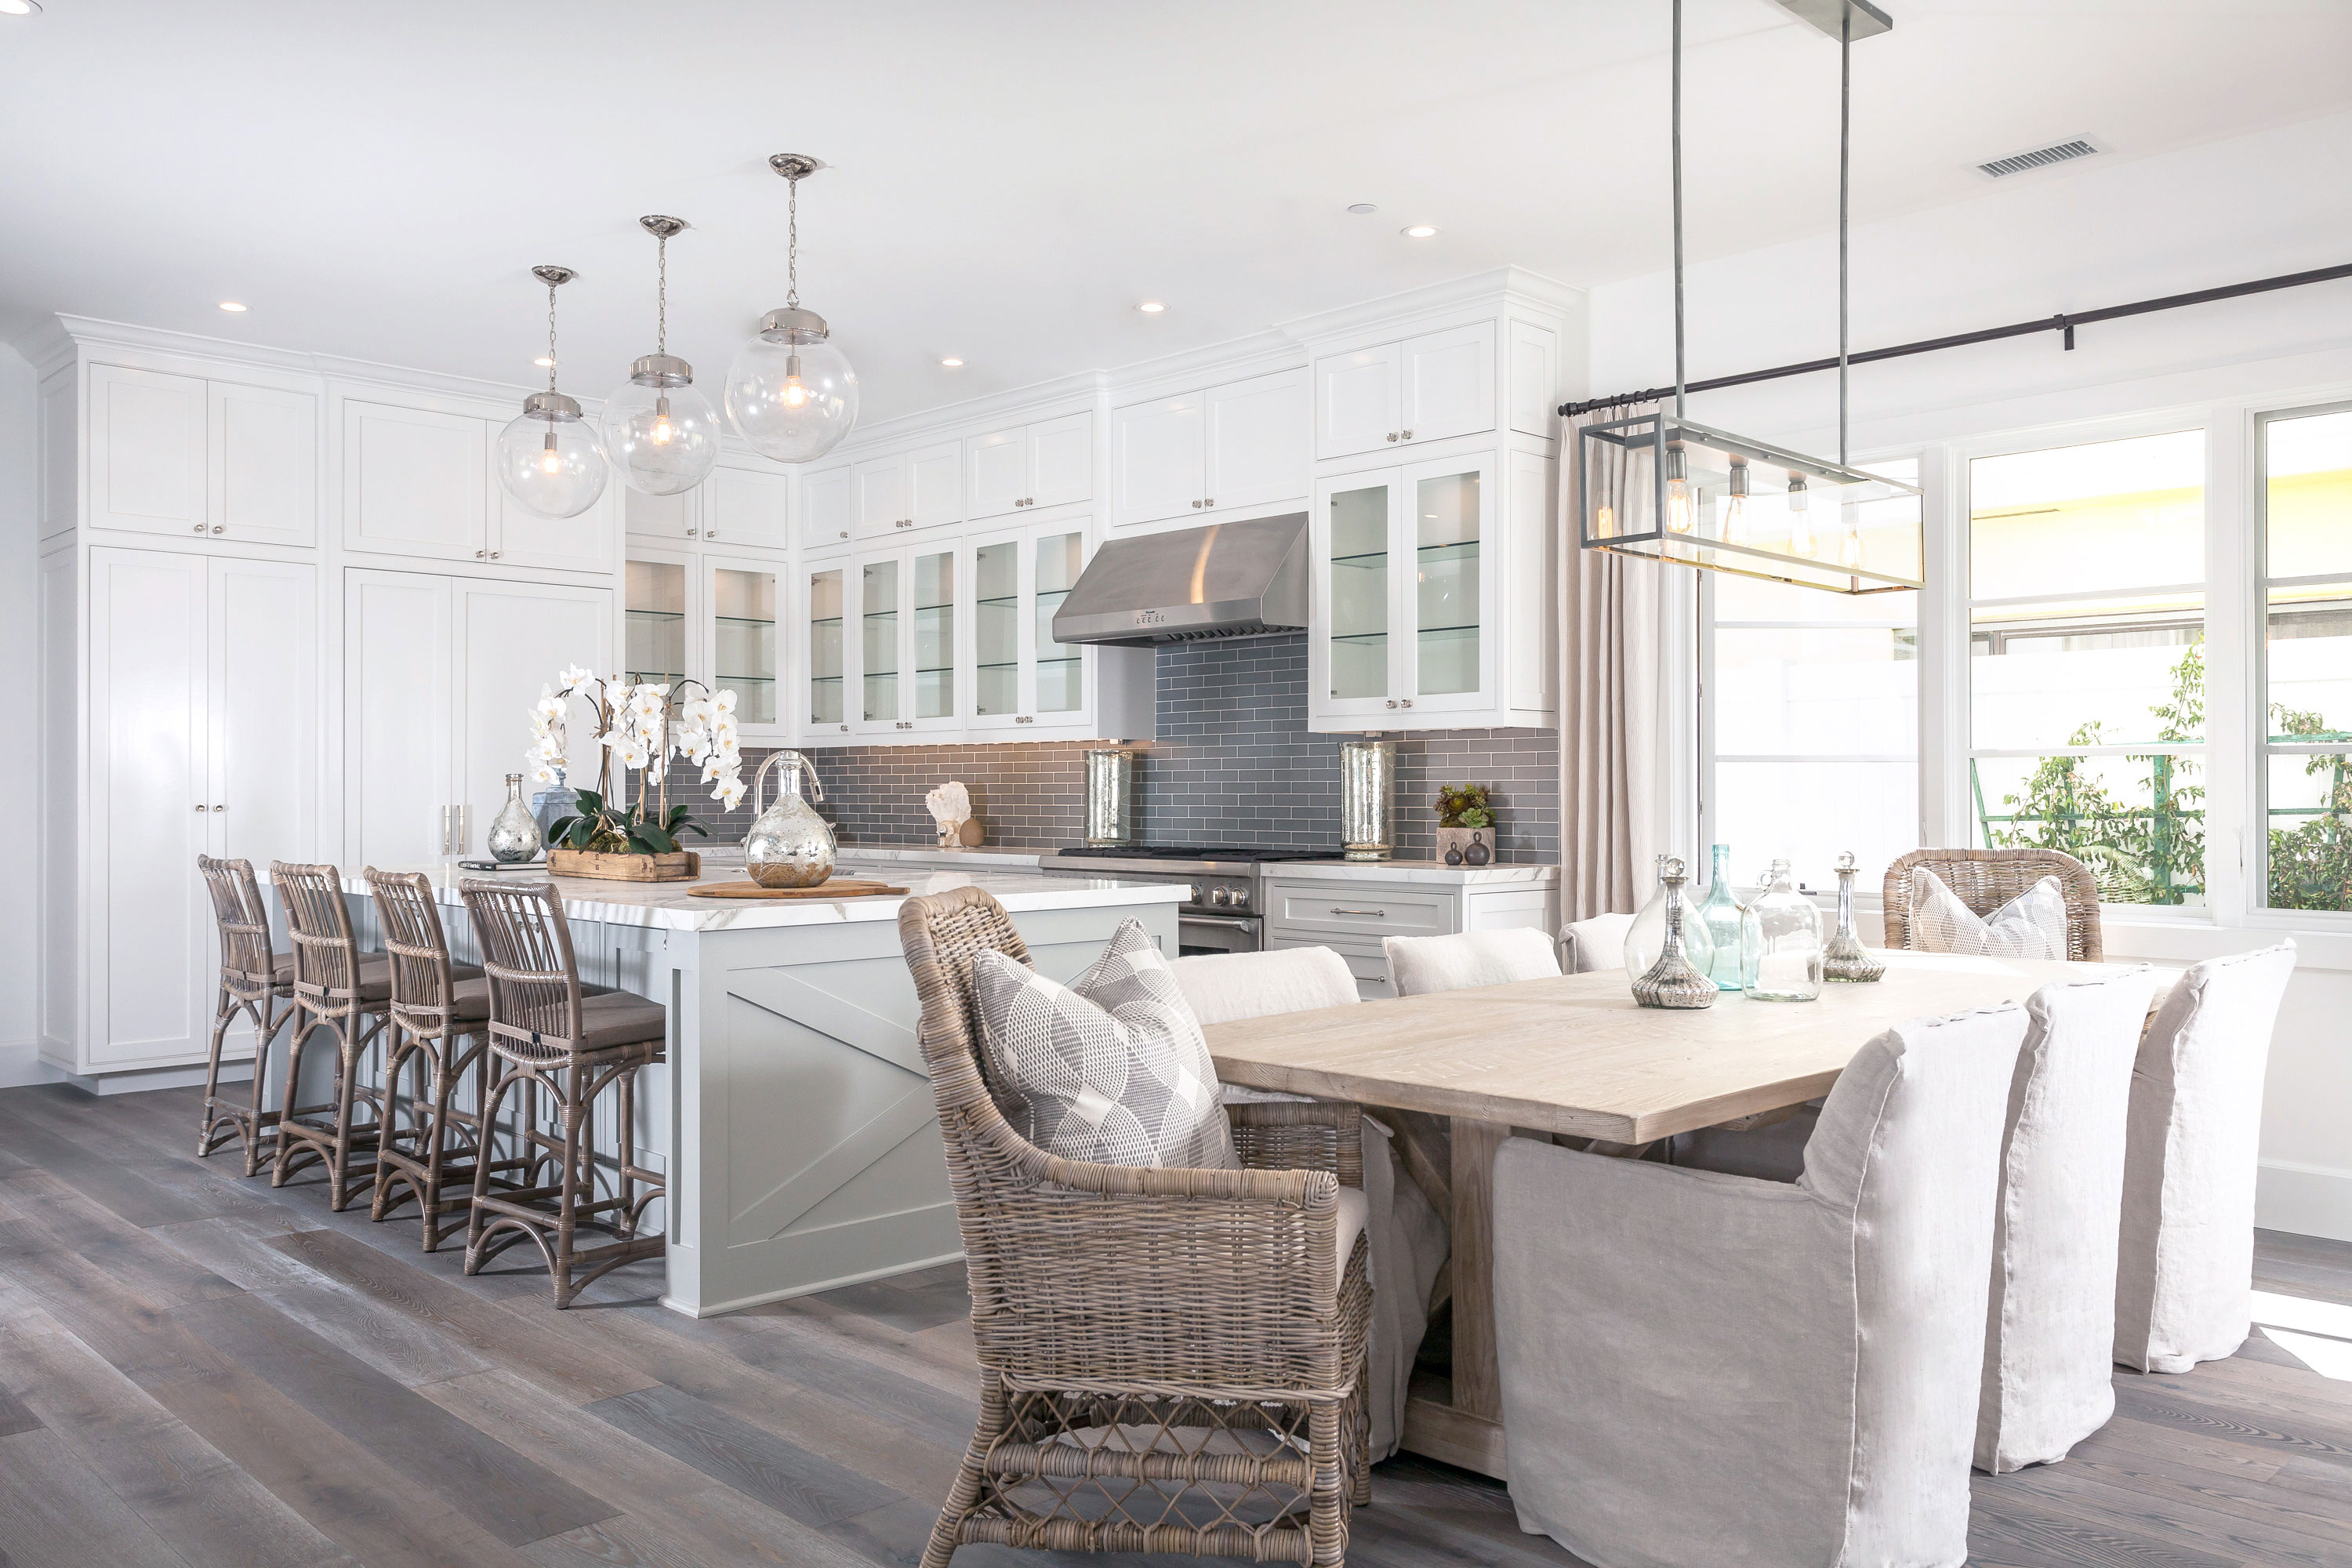 blackband_design_project_west_bay_dining_room_1